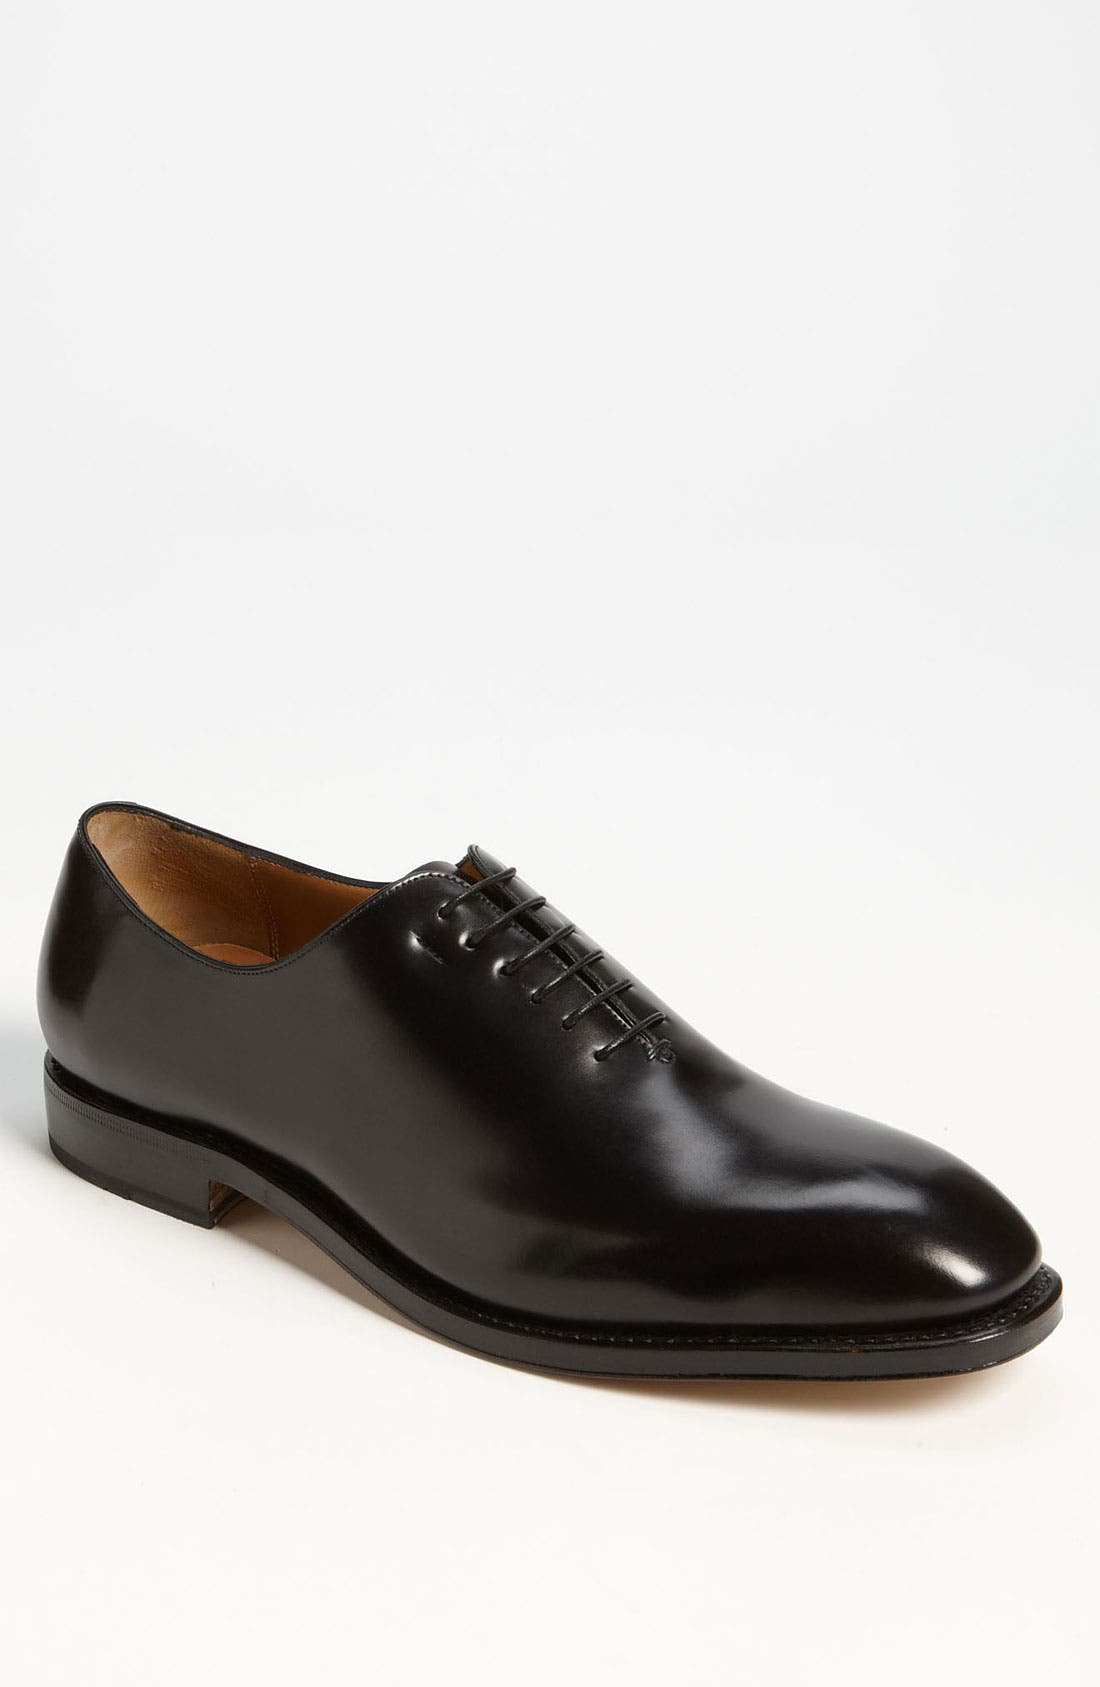 Alternate Image 1 Selected - Salvatore Ferragamo 'Carmelo' Plain Toe Oxford